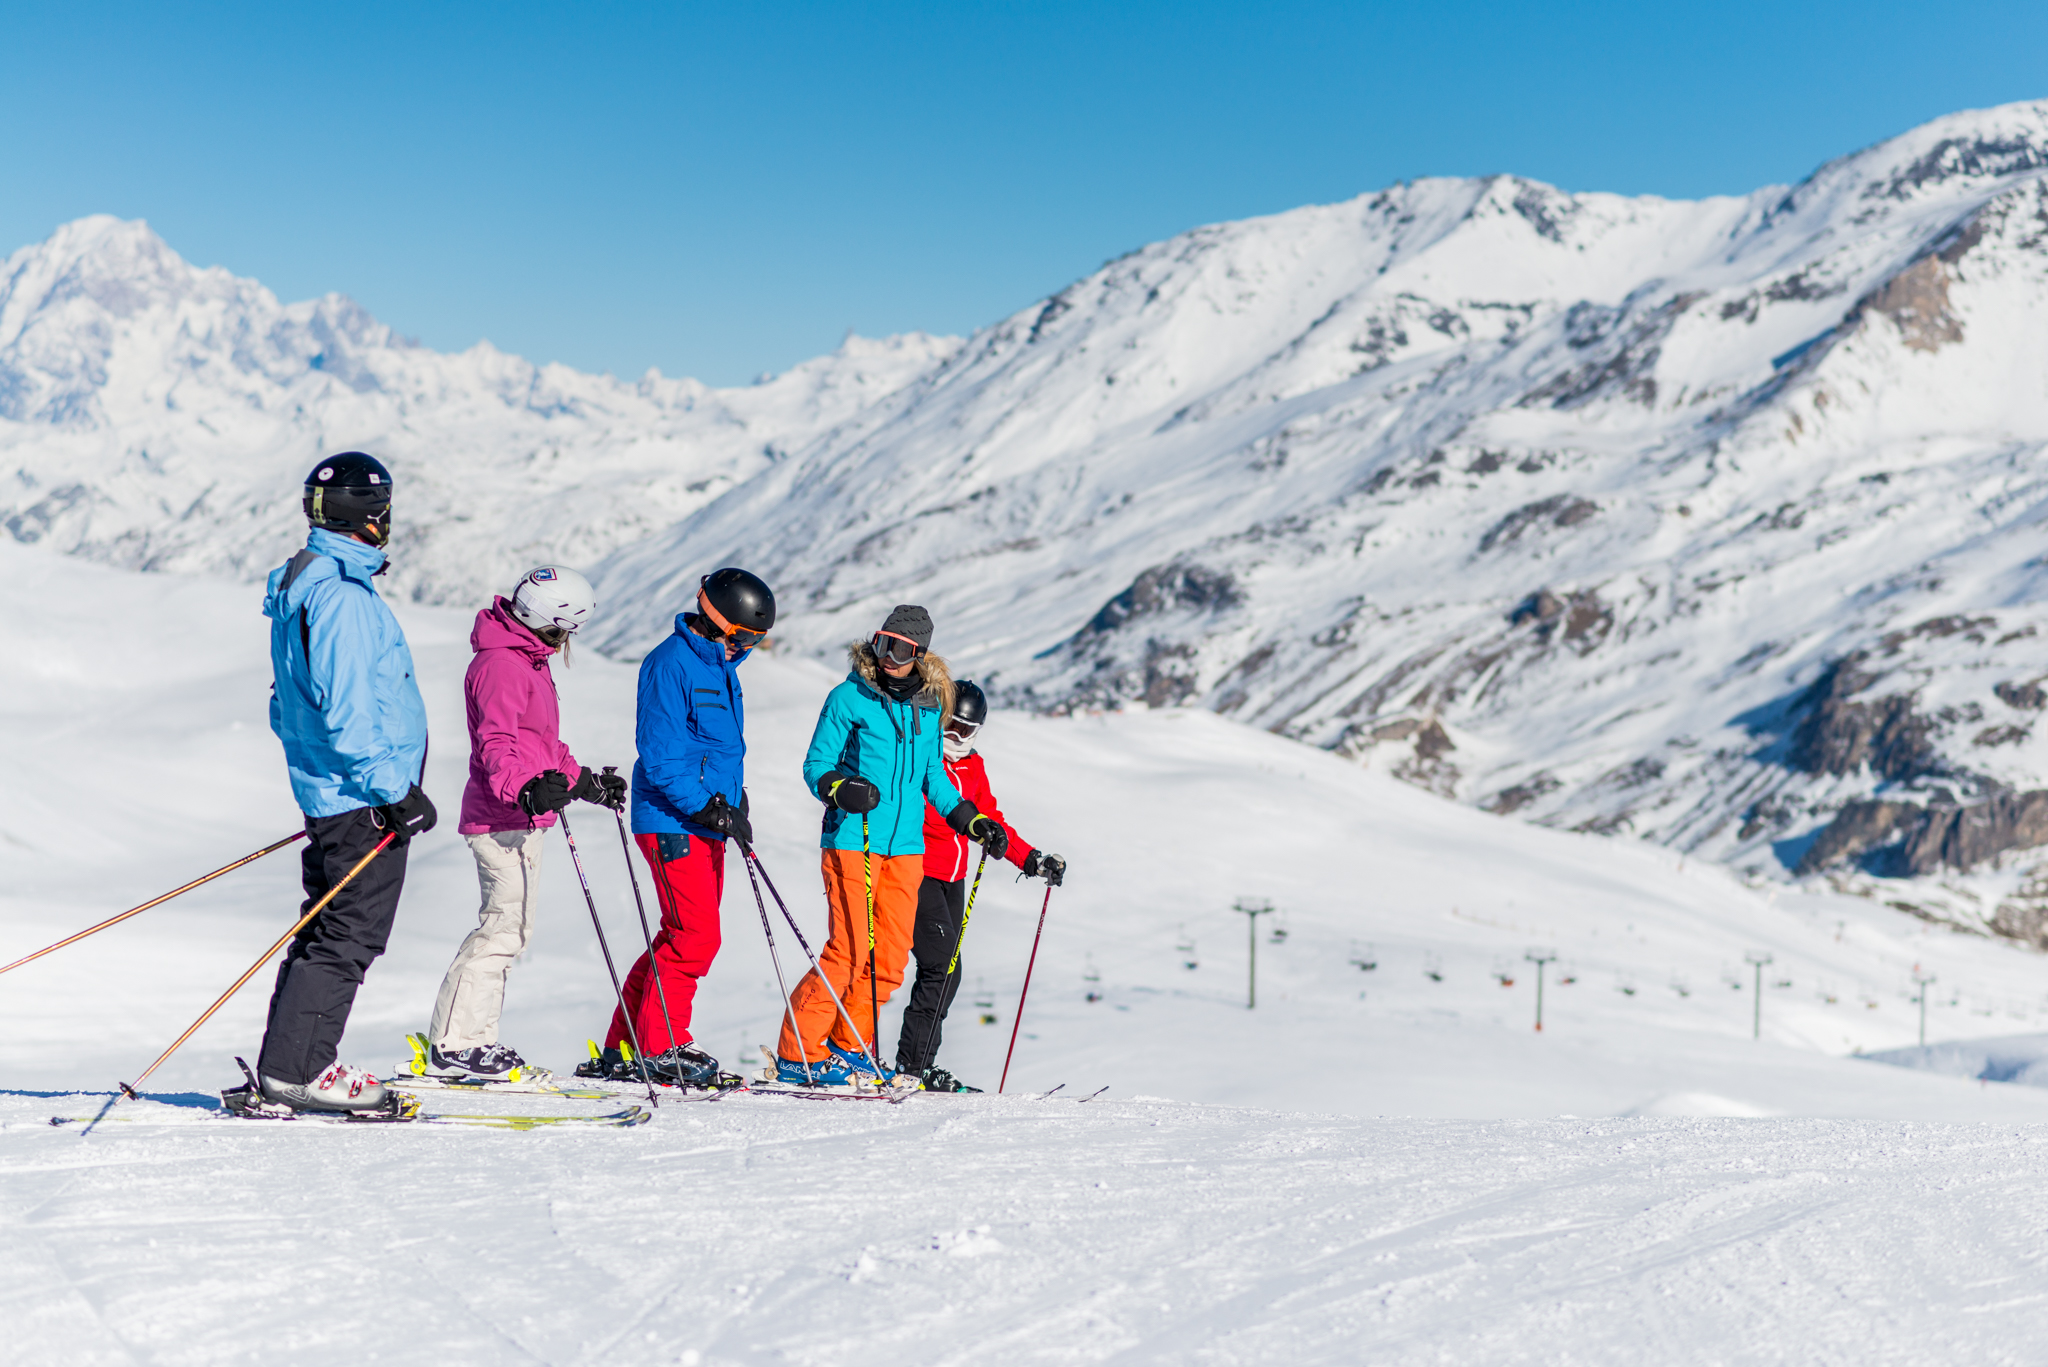 Adult Beginner Group Ski Lesson